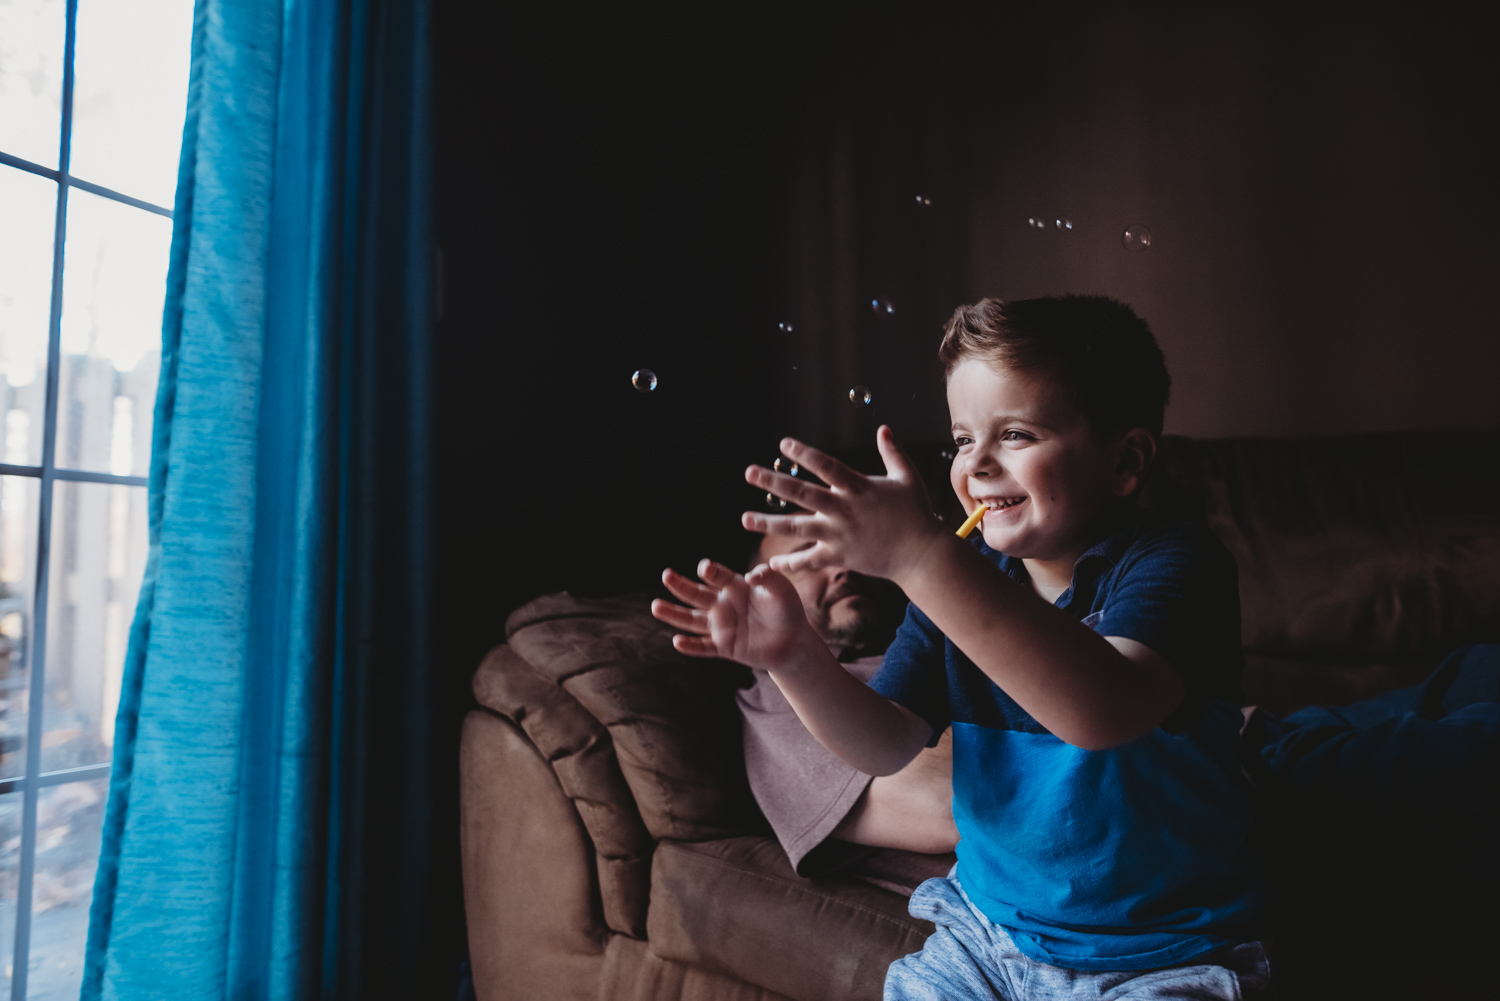 Angie_Klaus_photography_family-52.jpg